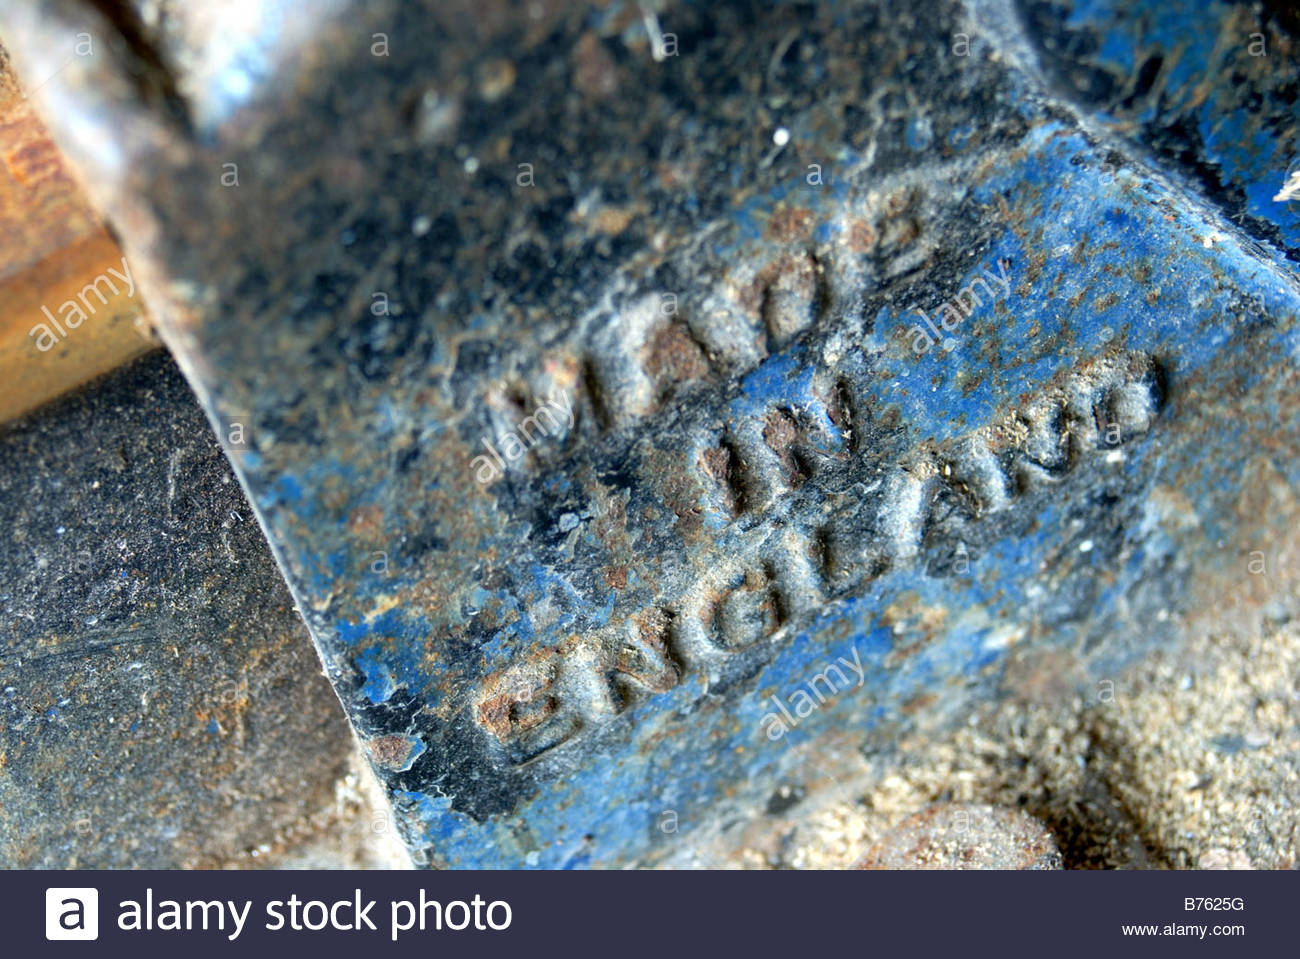 'Made in England' moulded into a metal vice. - Stock Image